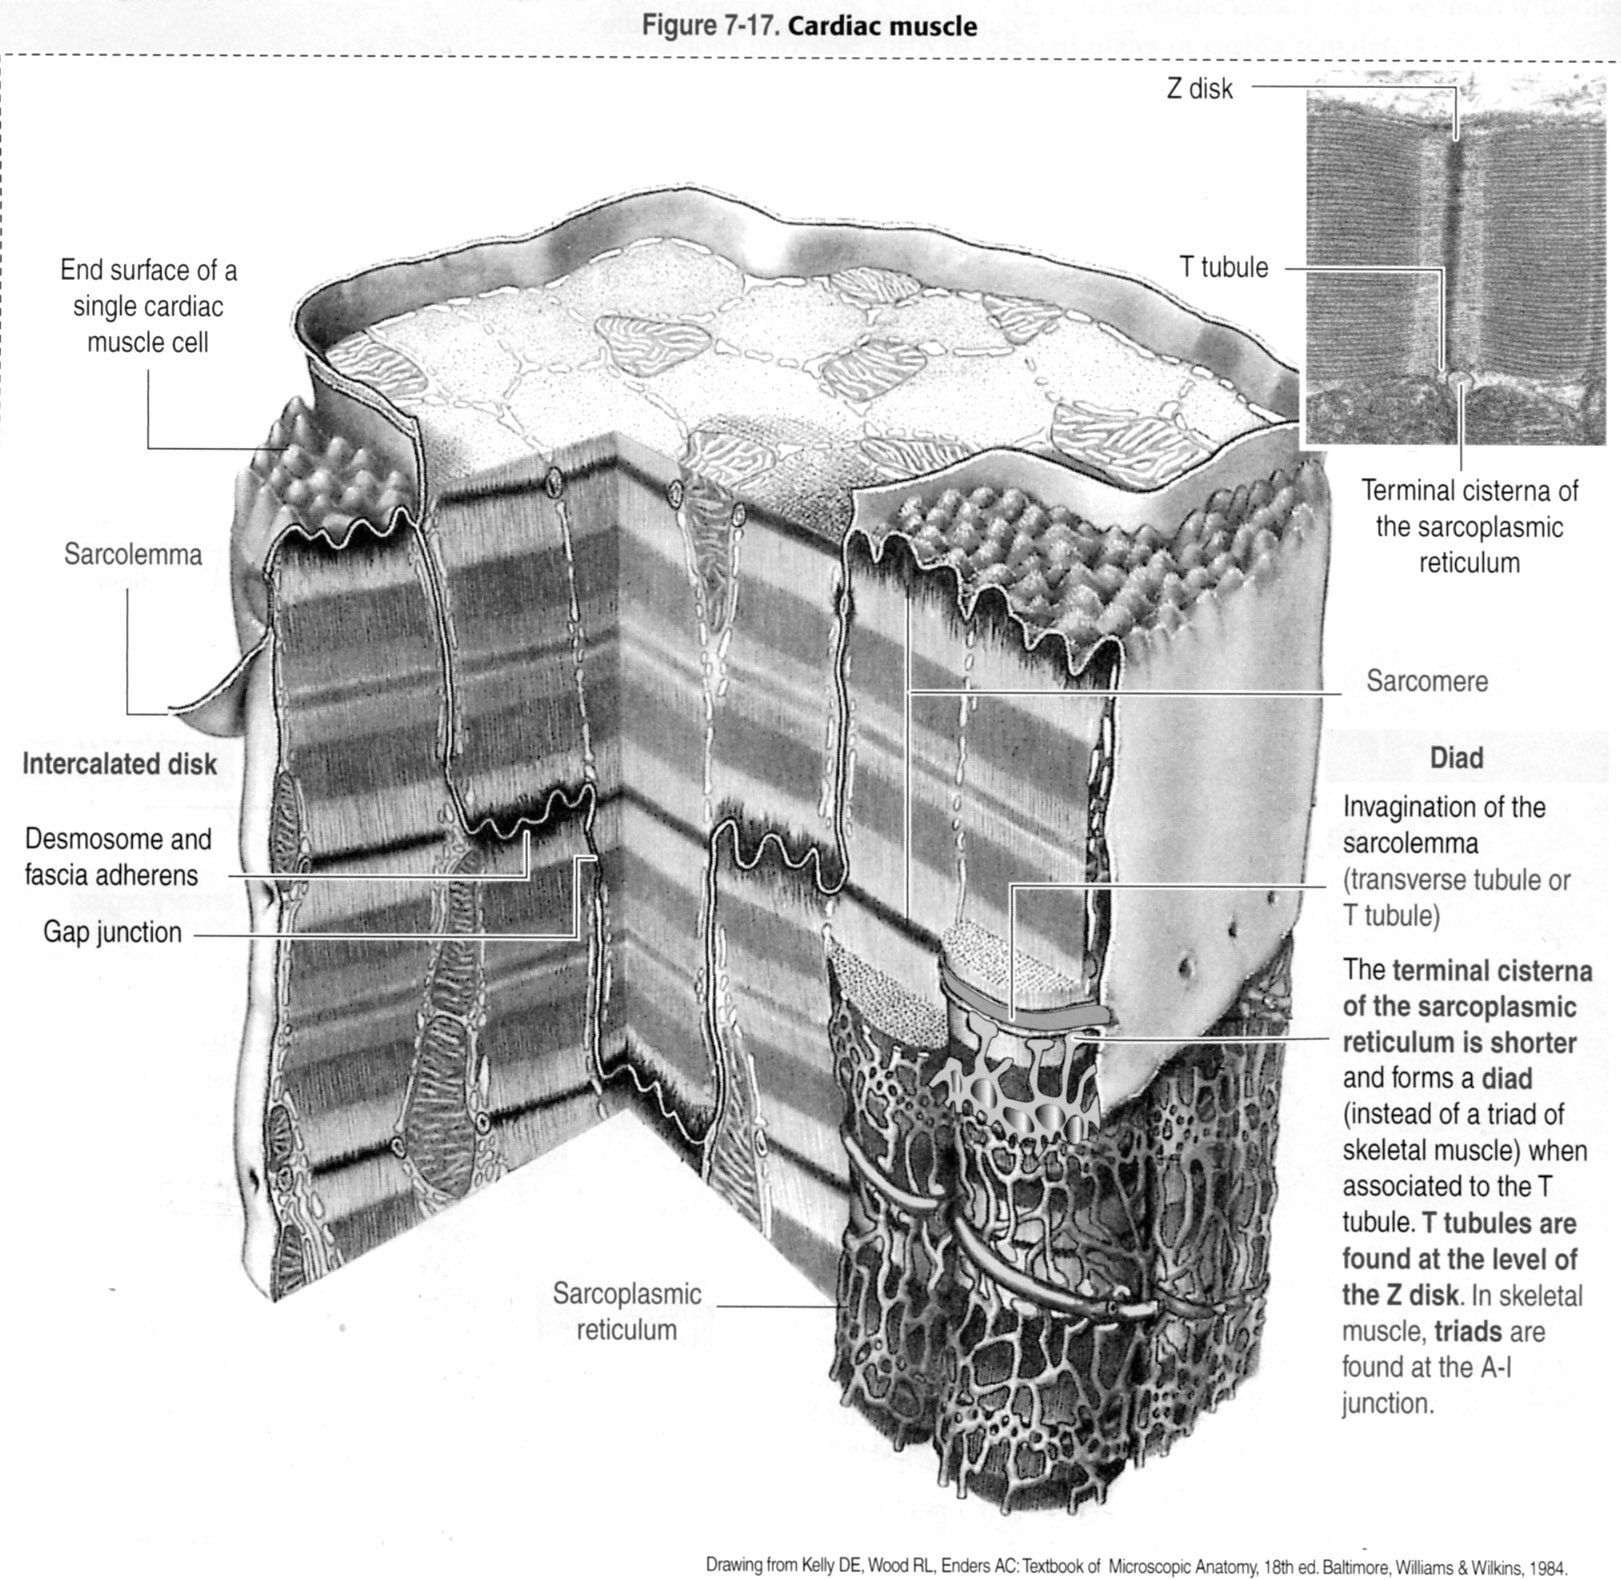 Muscle Cell Diagram Diagram of Cardiac Muscle